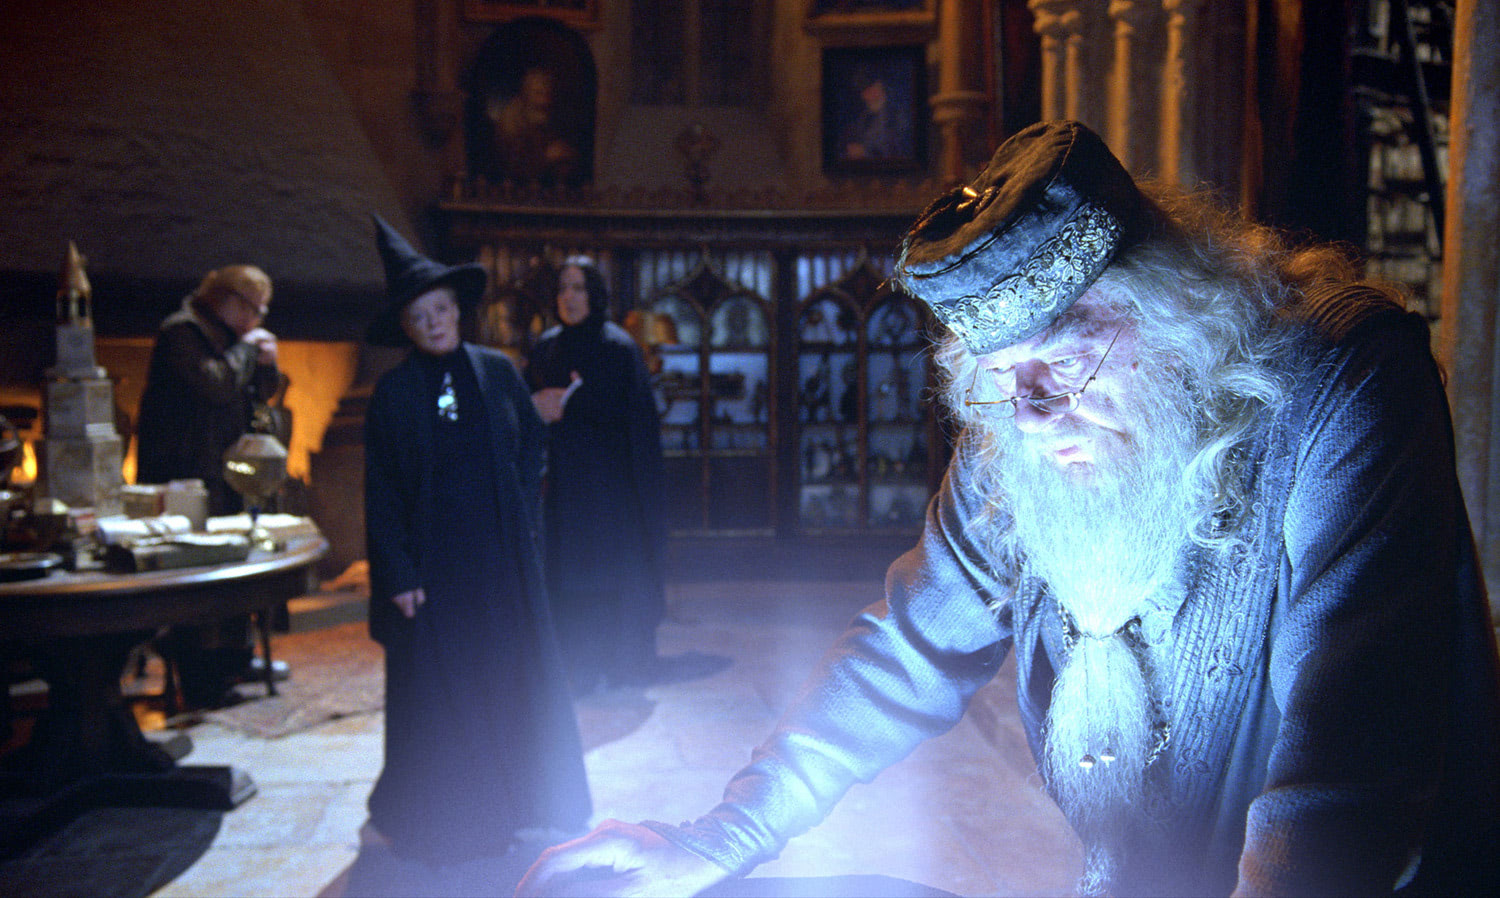 Dumbledore looks into the Pensieve